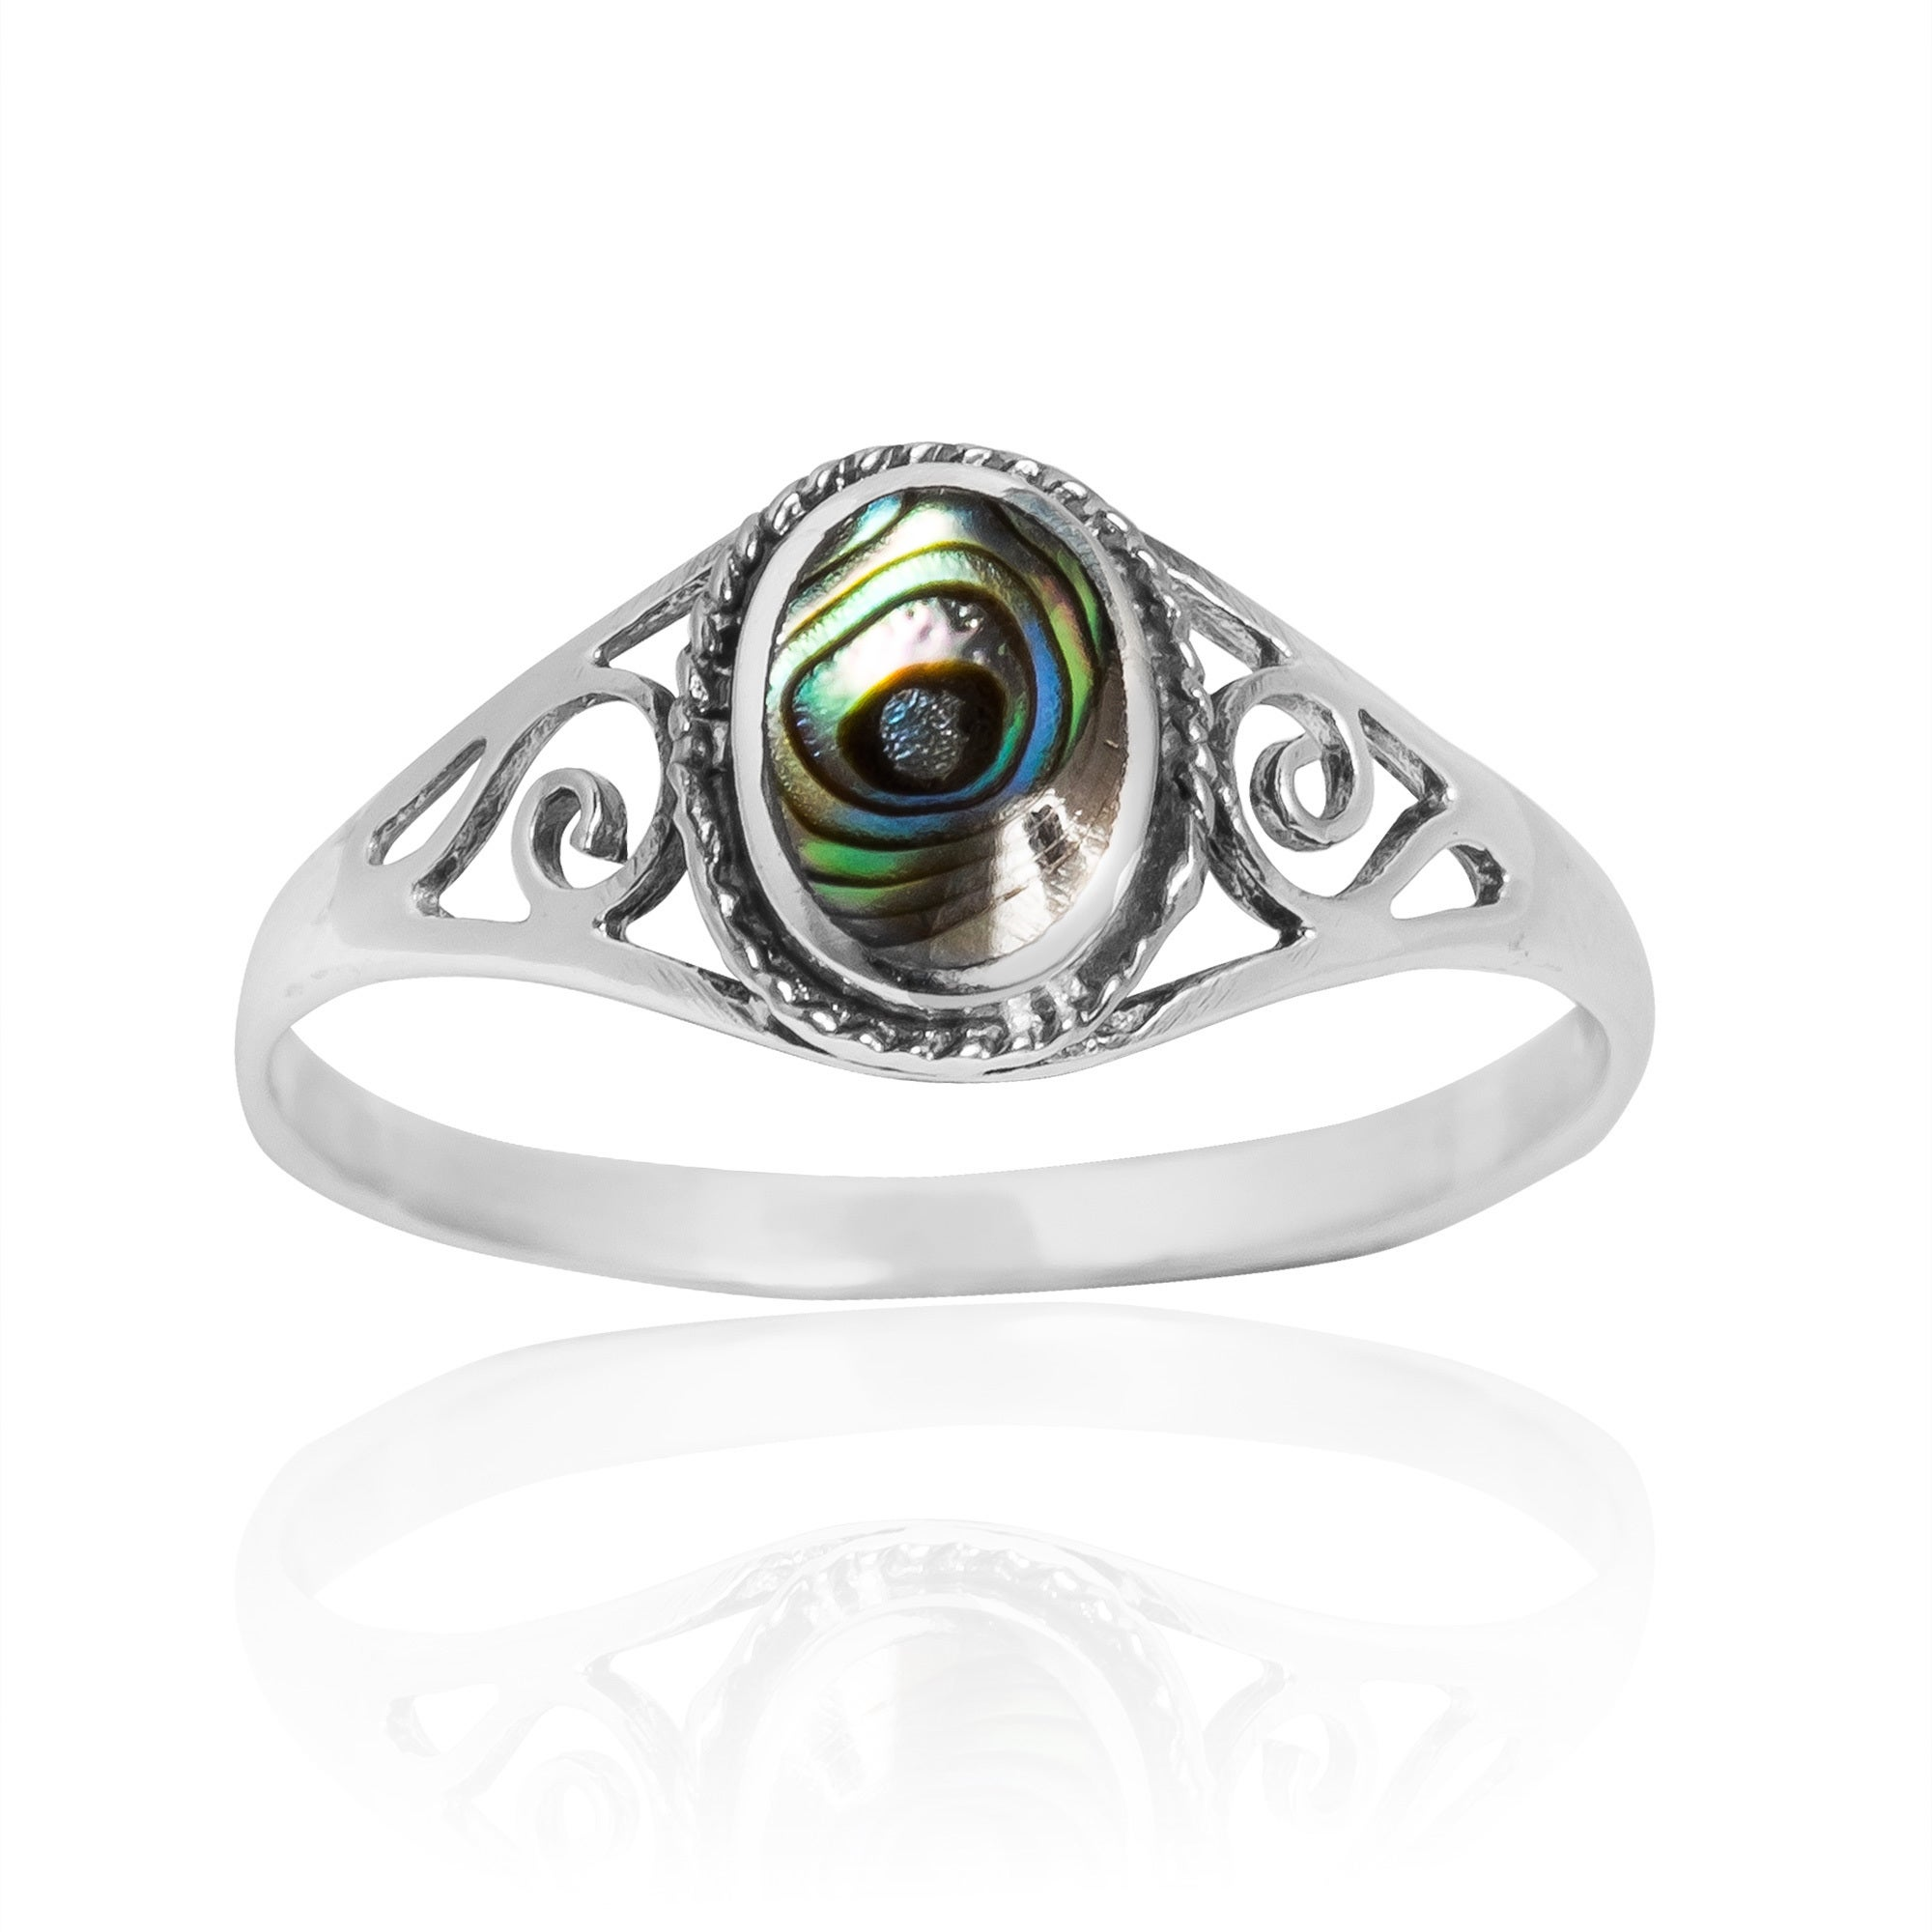 inthevoid ring forged gold green abalone hand pin wedding rings band on by electrum